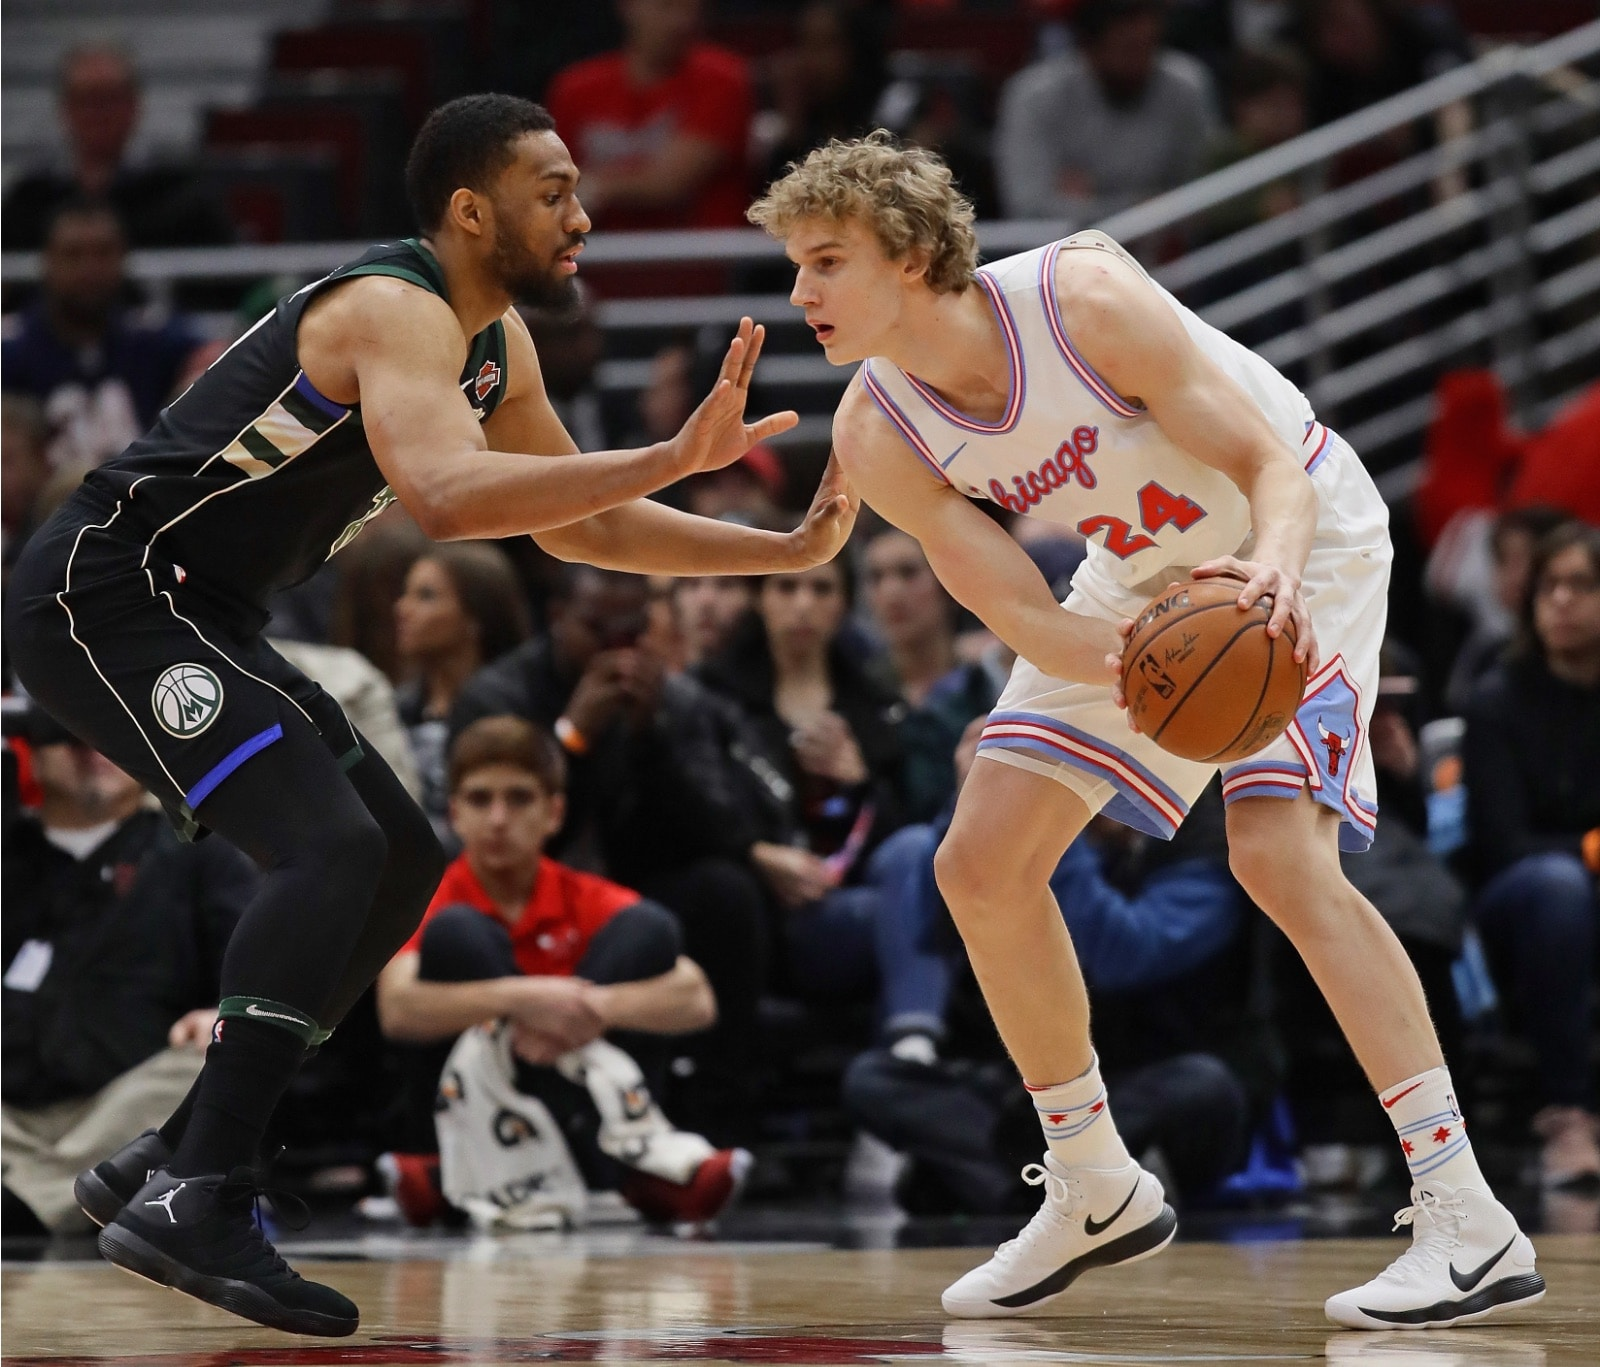 Jabari Parker squares up against Lauri Markkanen